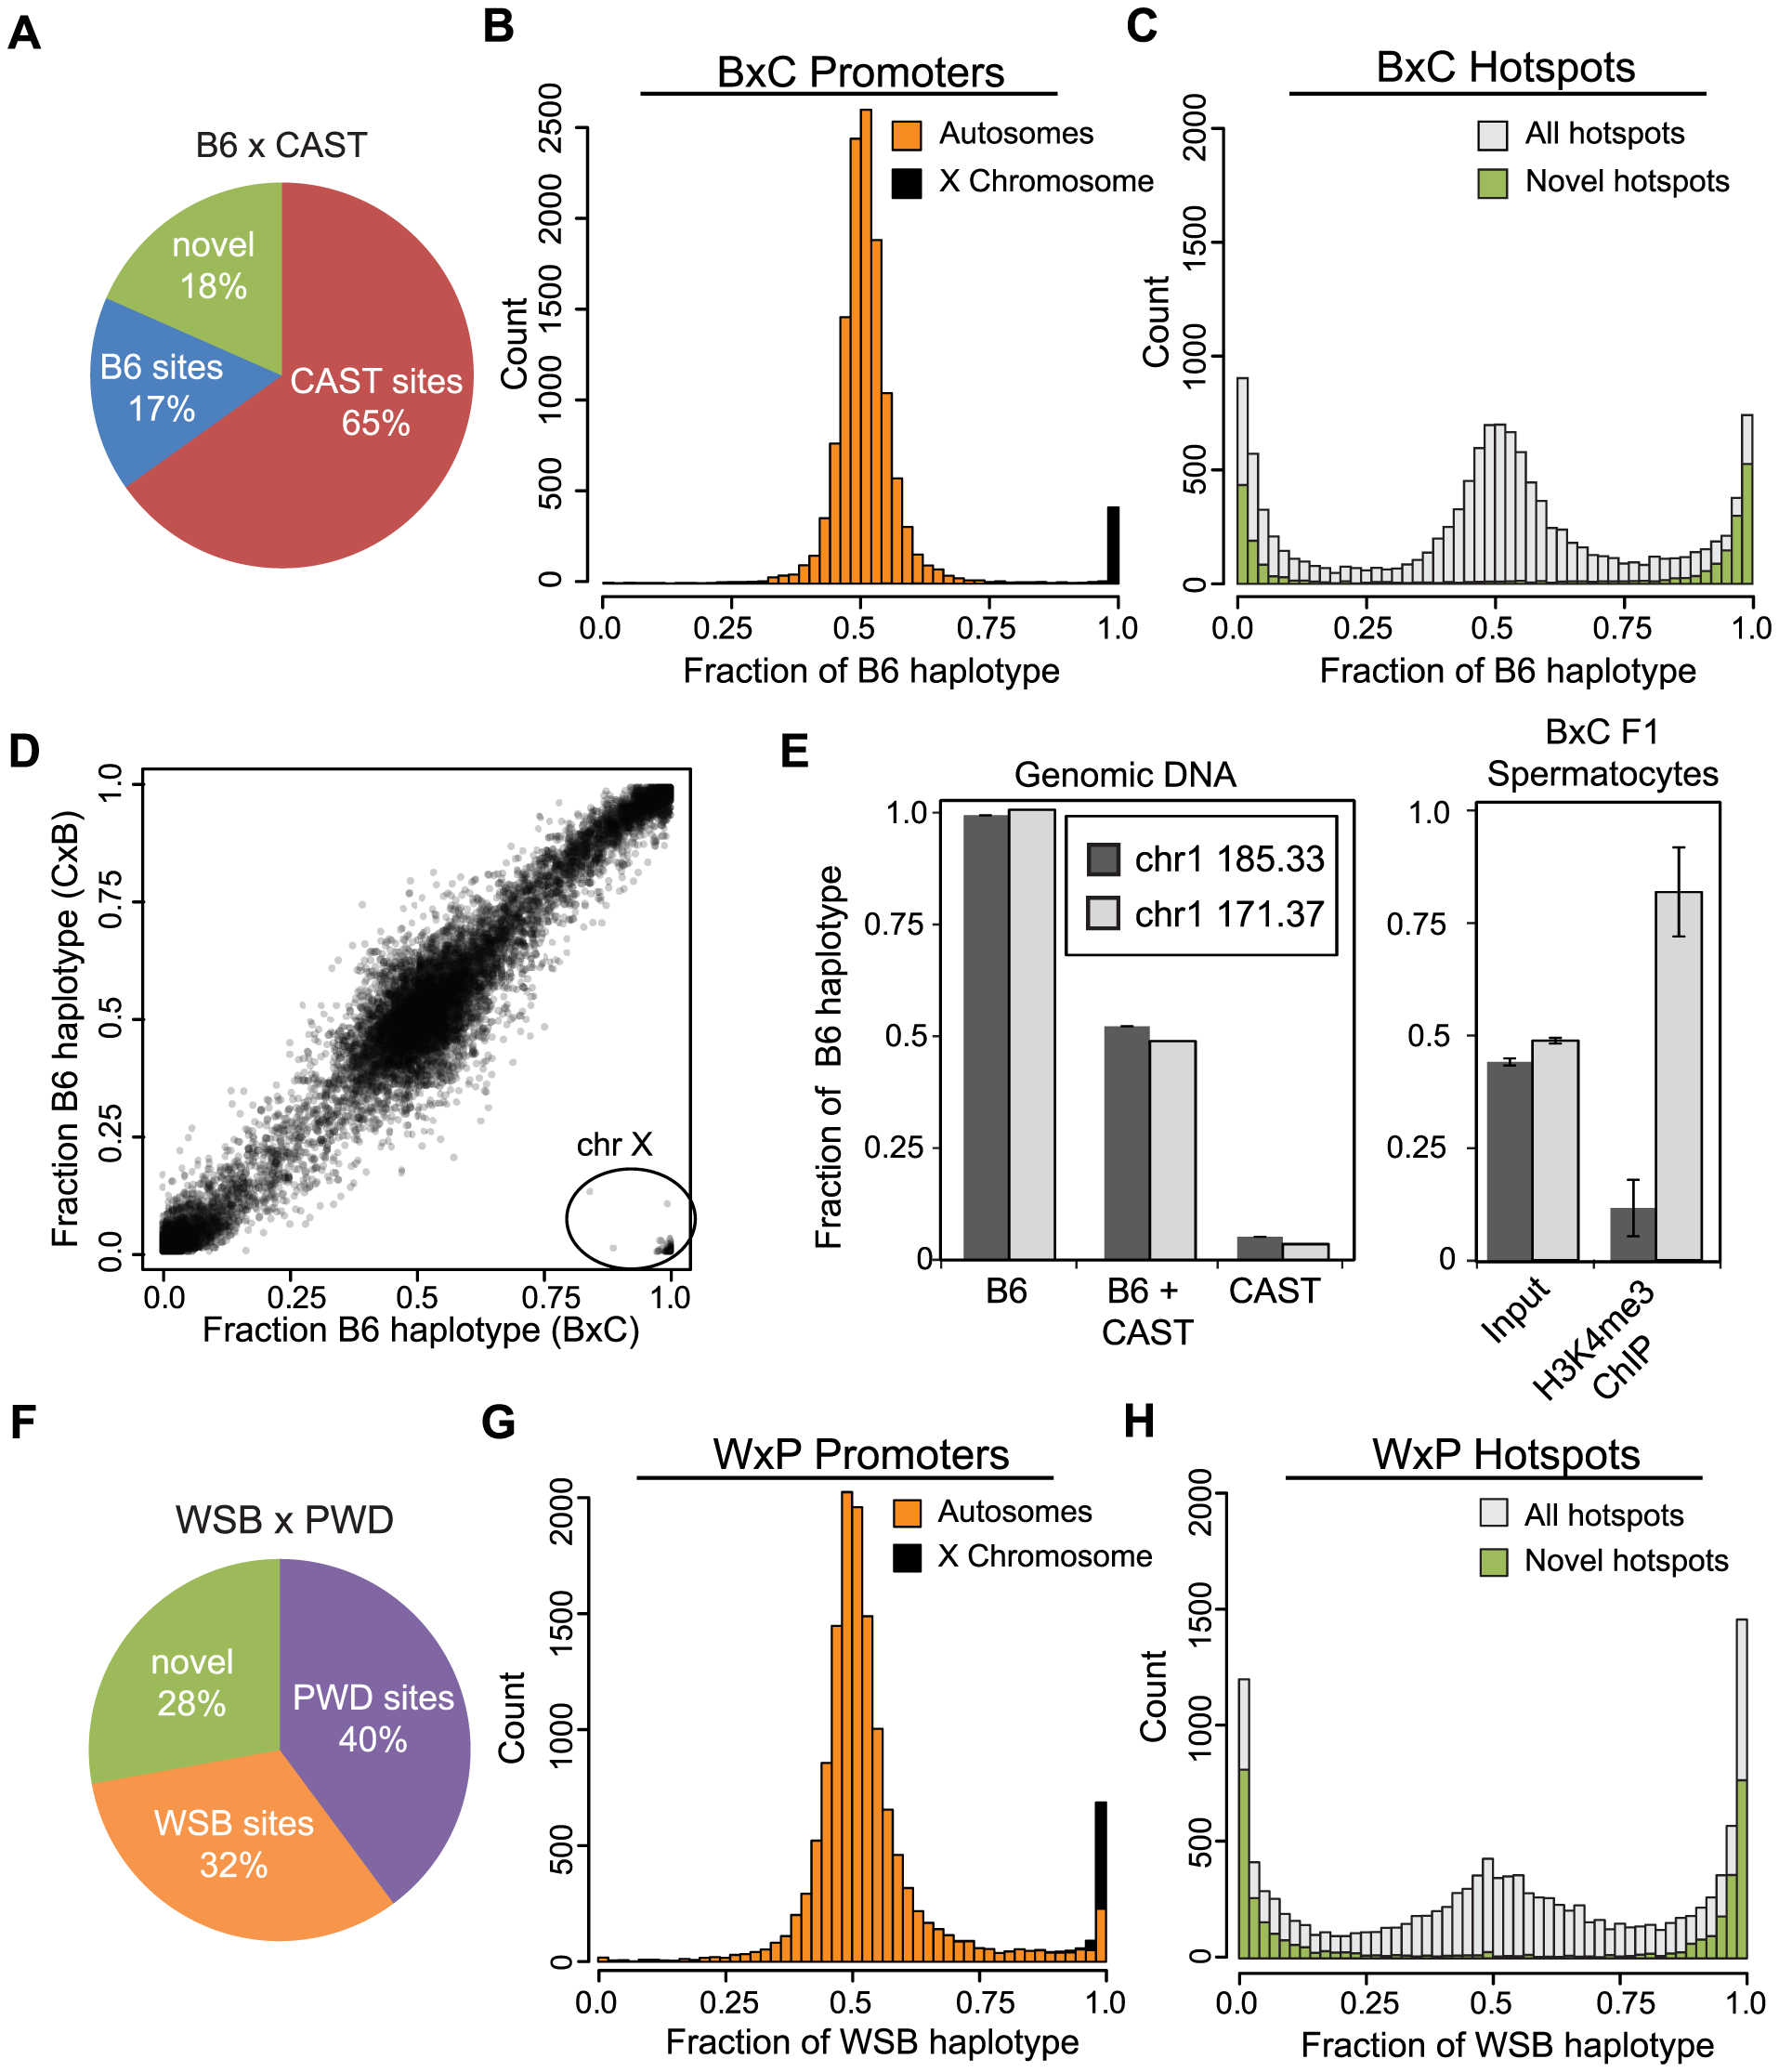 Novel hotspots have biased H3K4me3 modification.